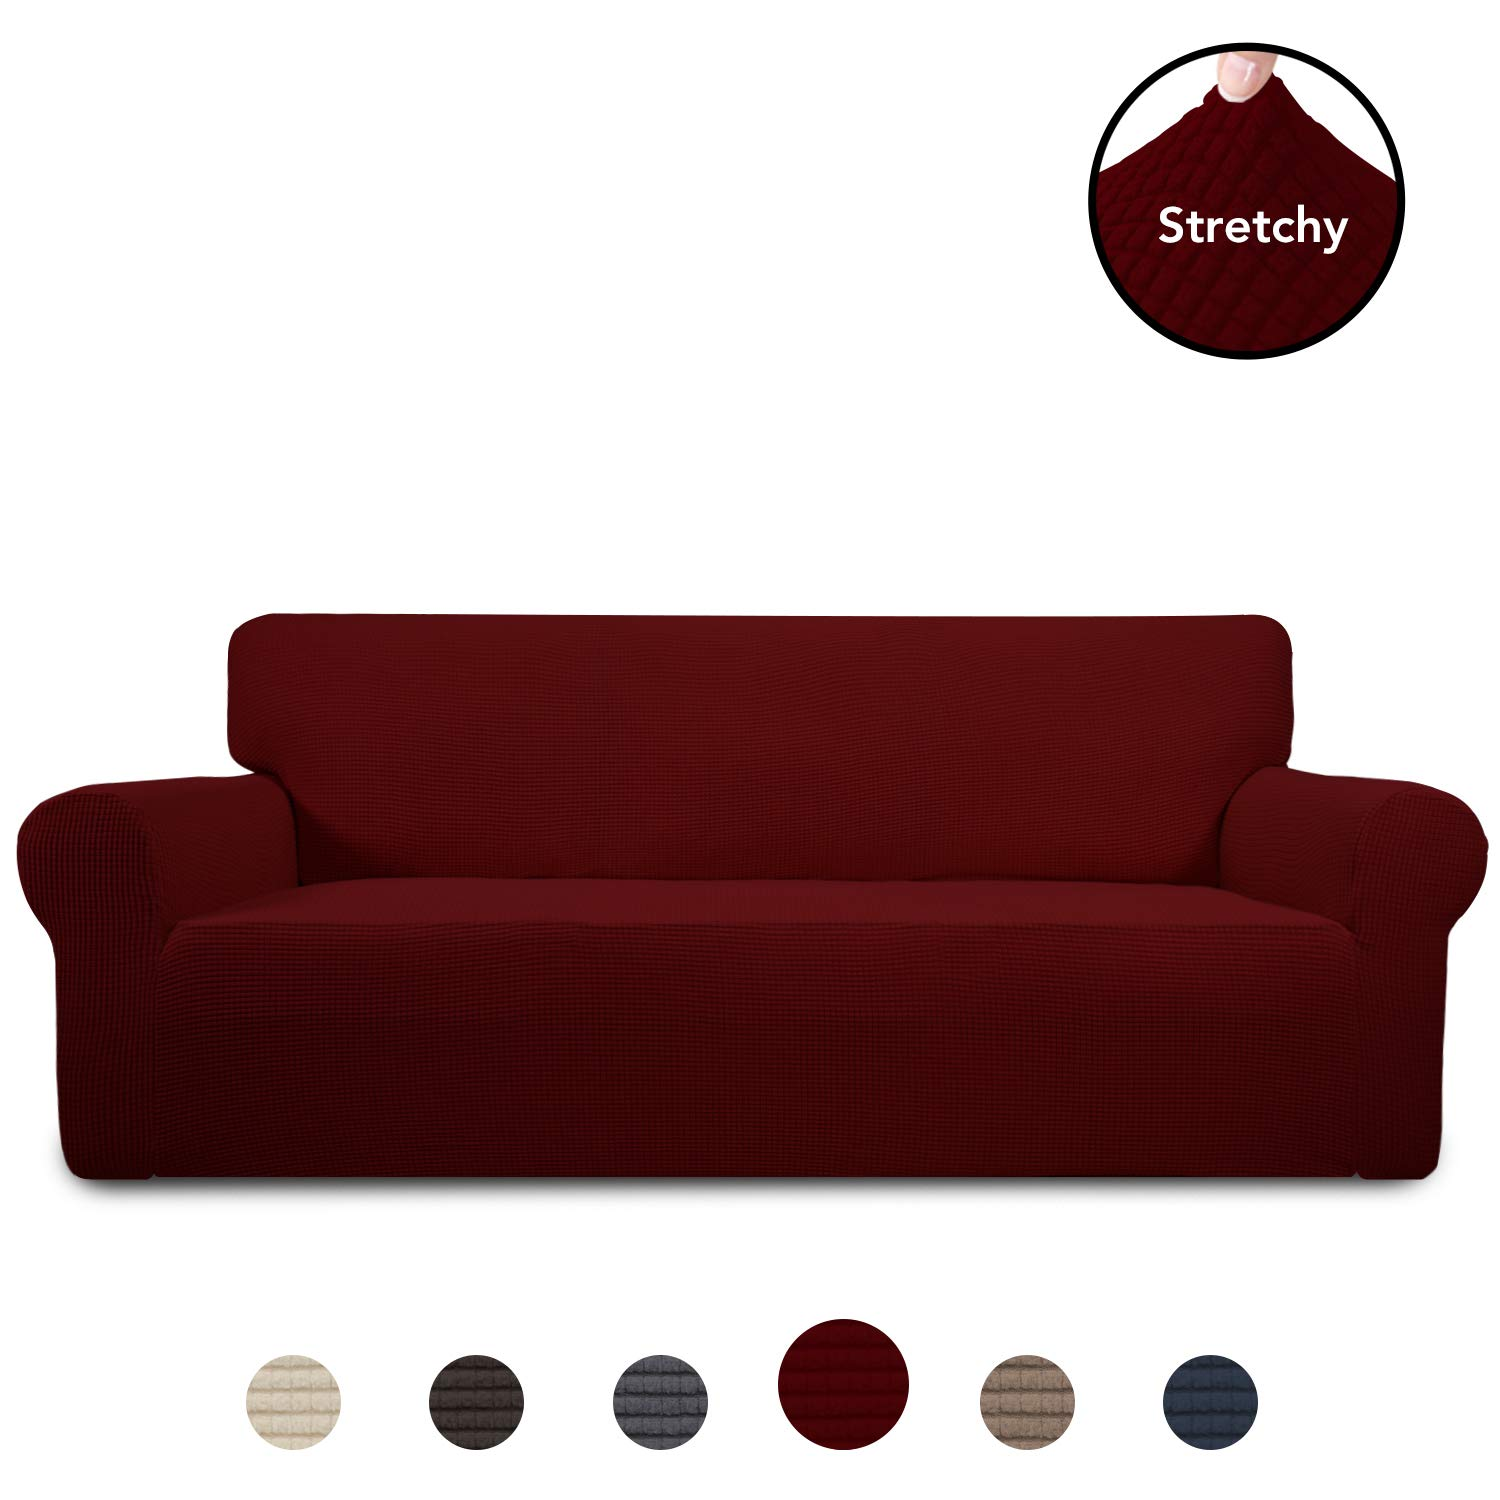 PureFit Stretch Sofa Slipcover – Spandex Jacquard Anti-Slip Soft Couch Sofa Cover, Washable Furniture Protector with Anti-Skid Foam and Elastic Bottom for Kids (Sofa, Wine)